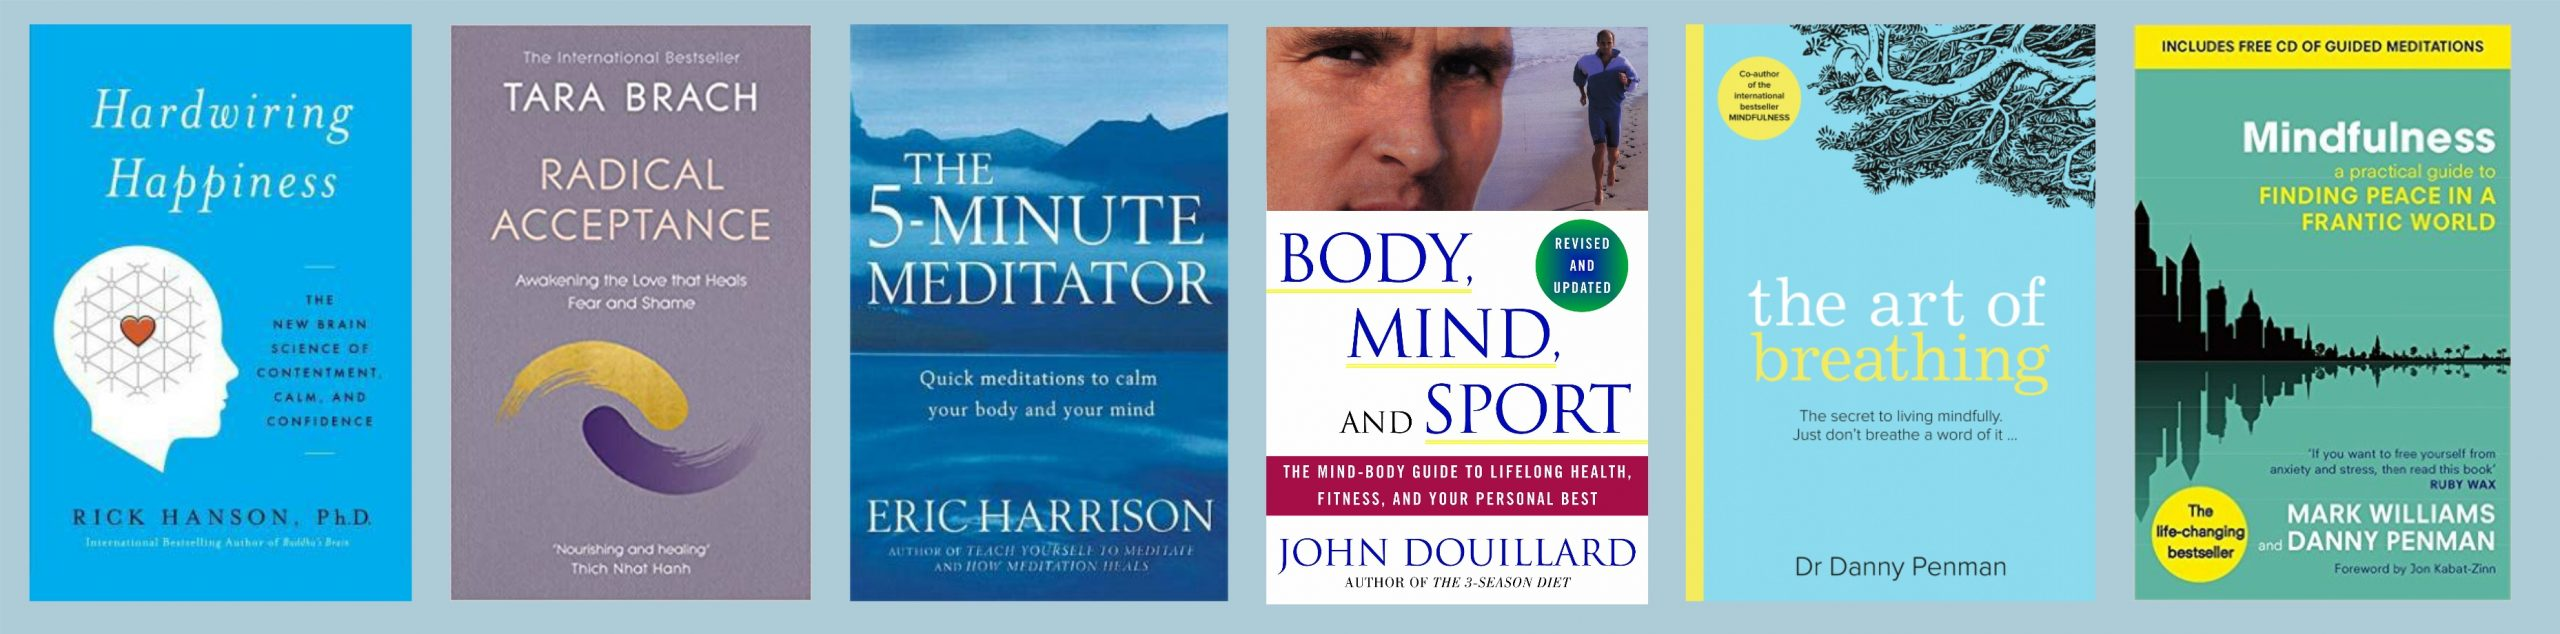 Front covers of mindfulness-related books recommended in this blog post